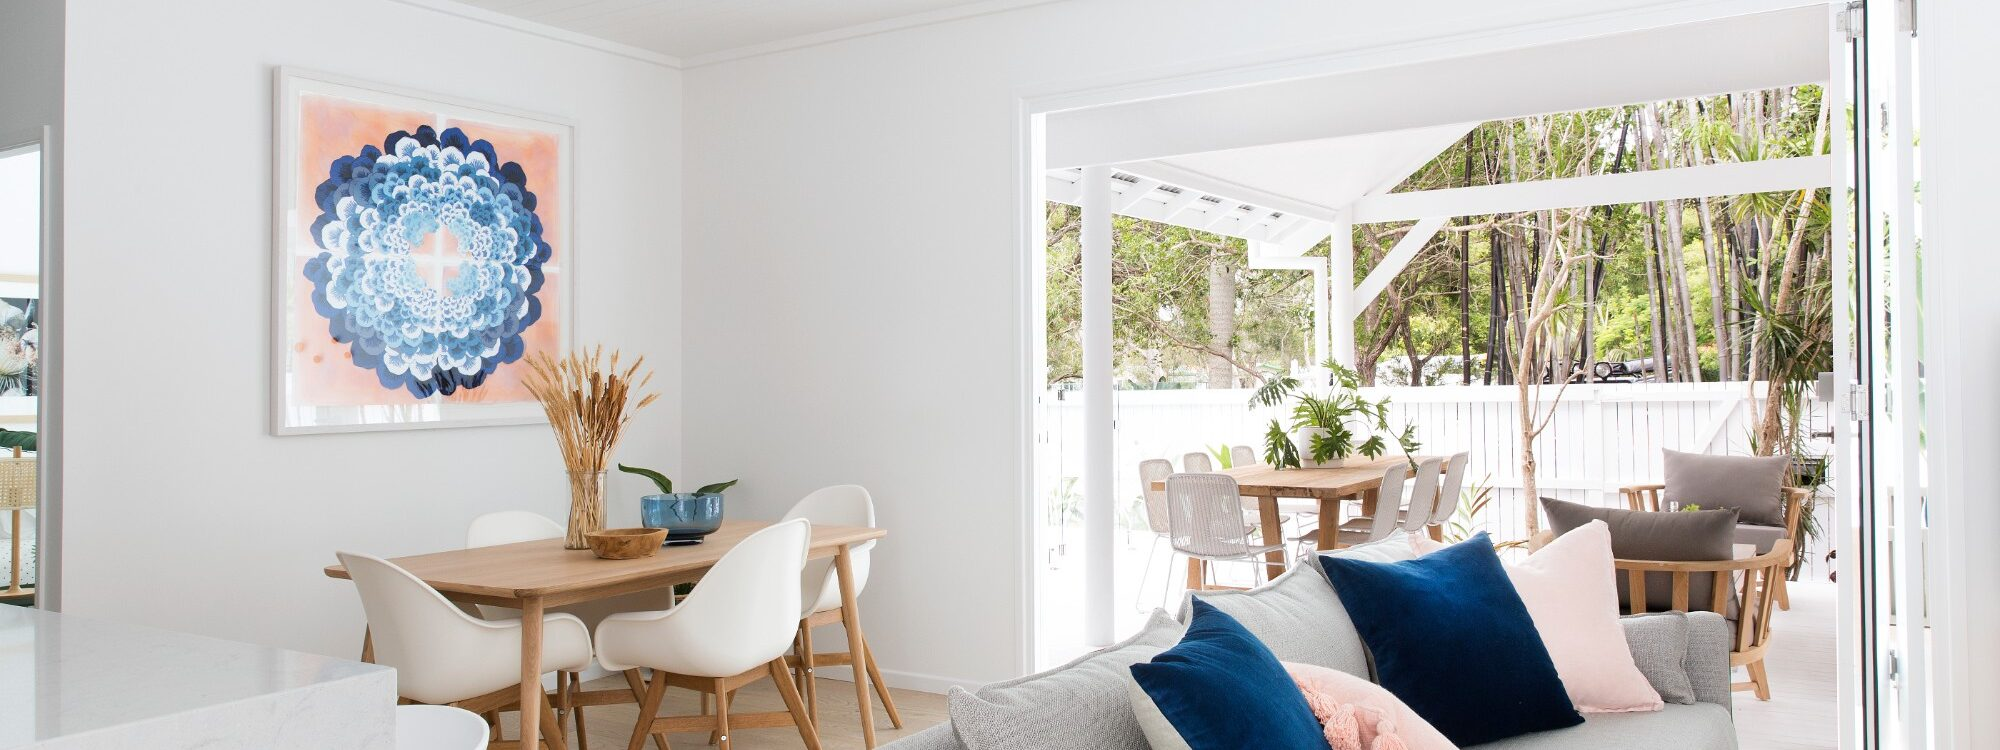 Barrel and Branch - Byron Bay - lounge room